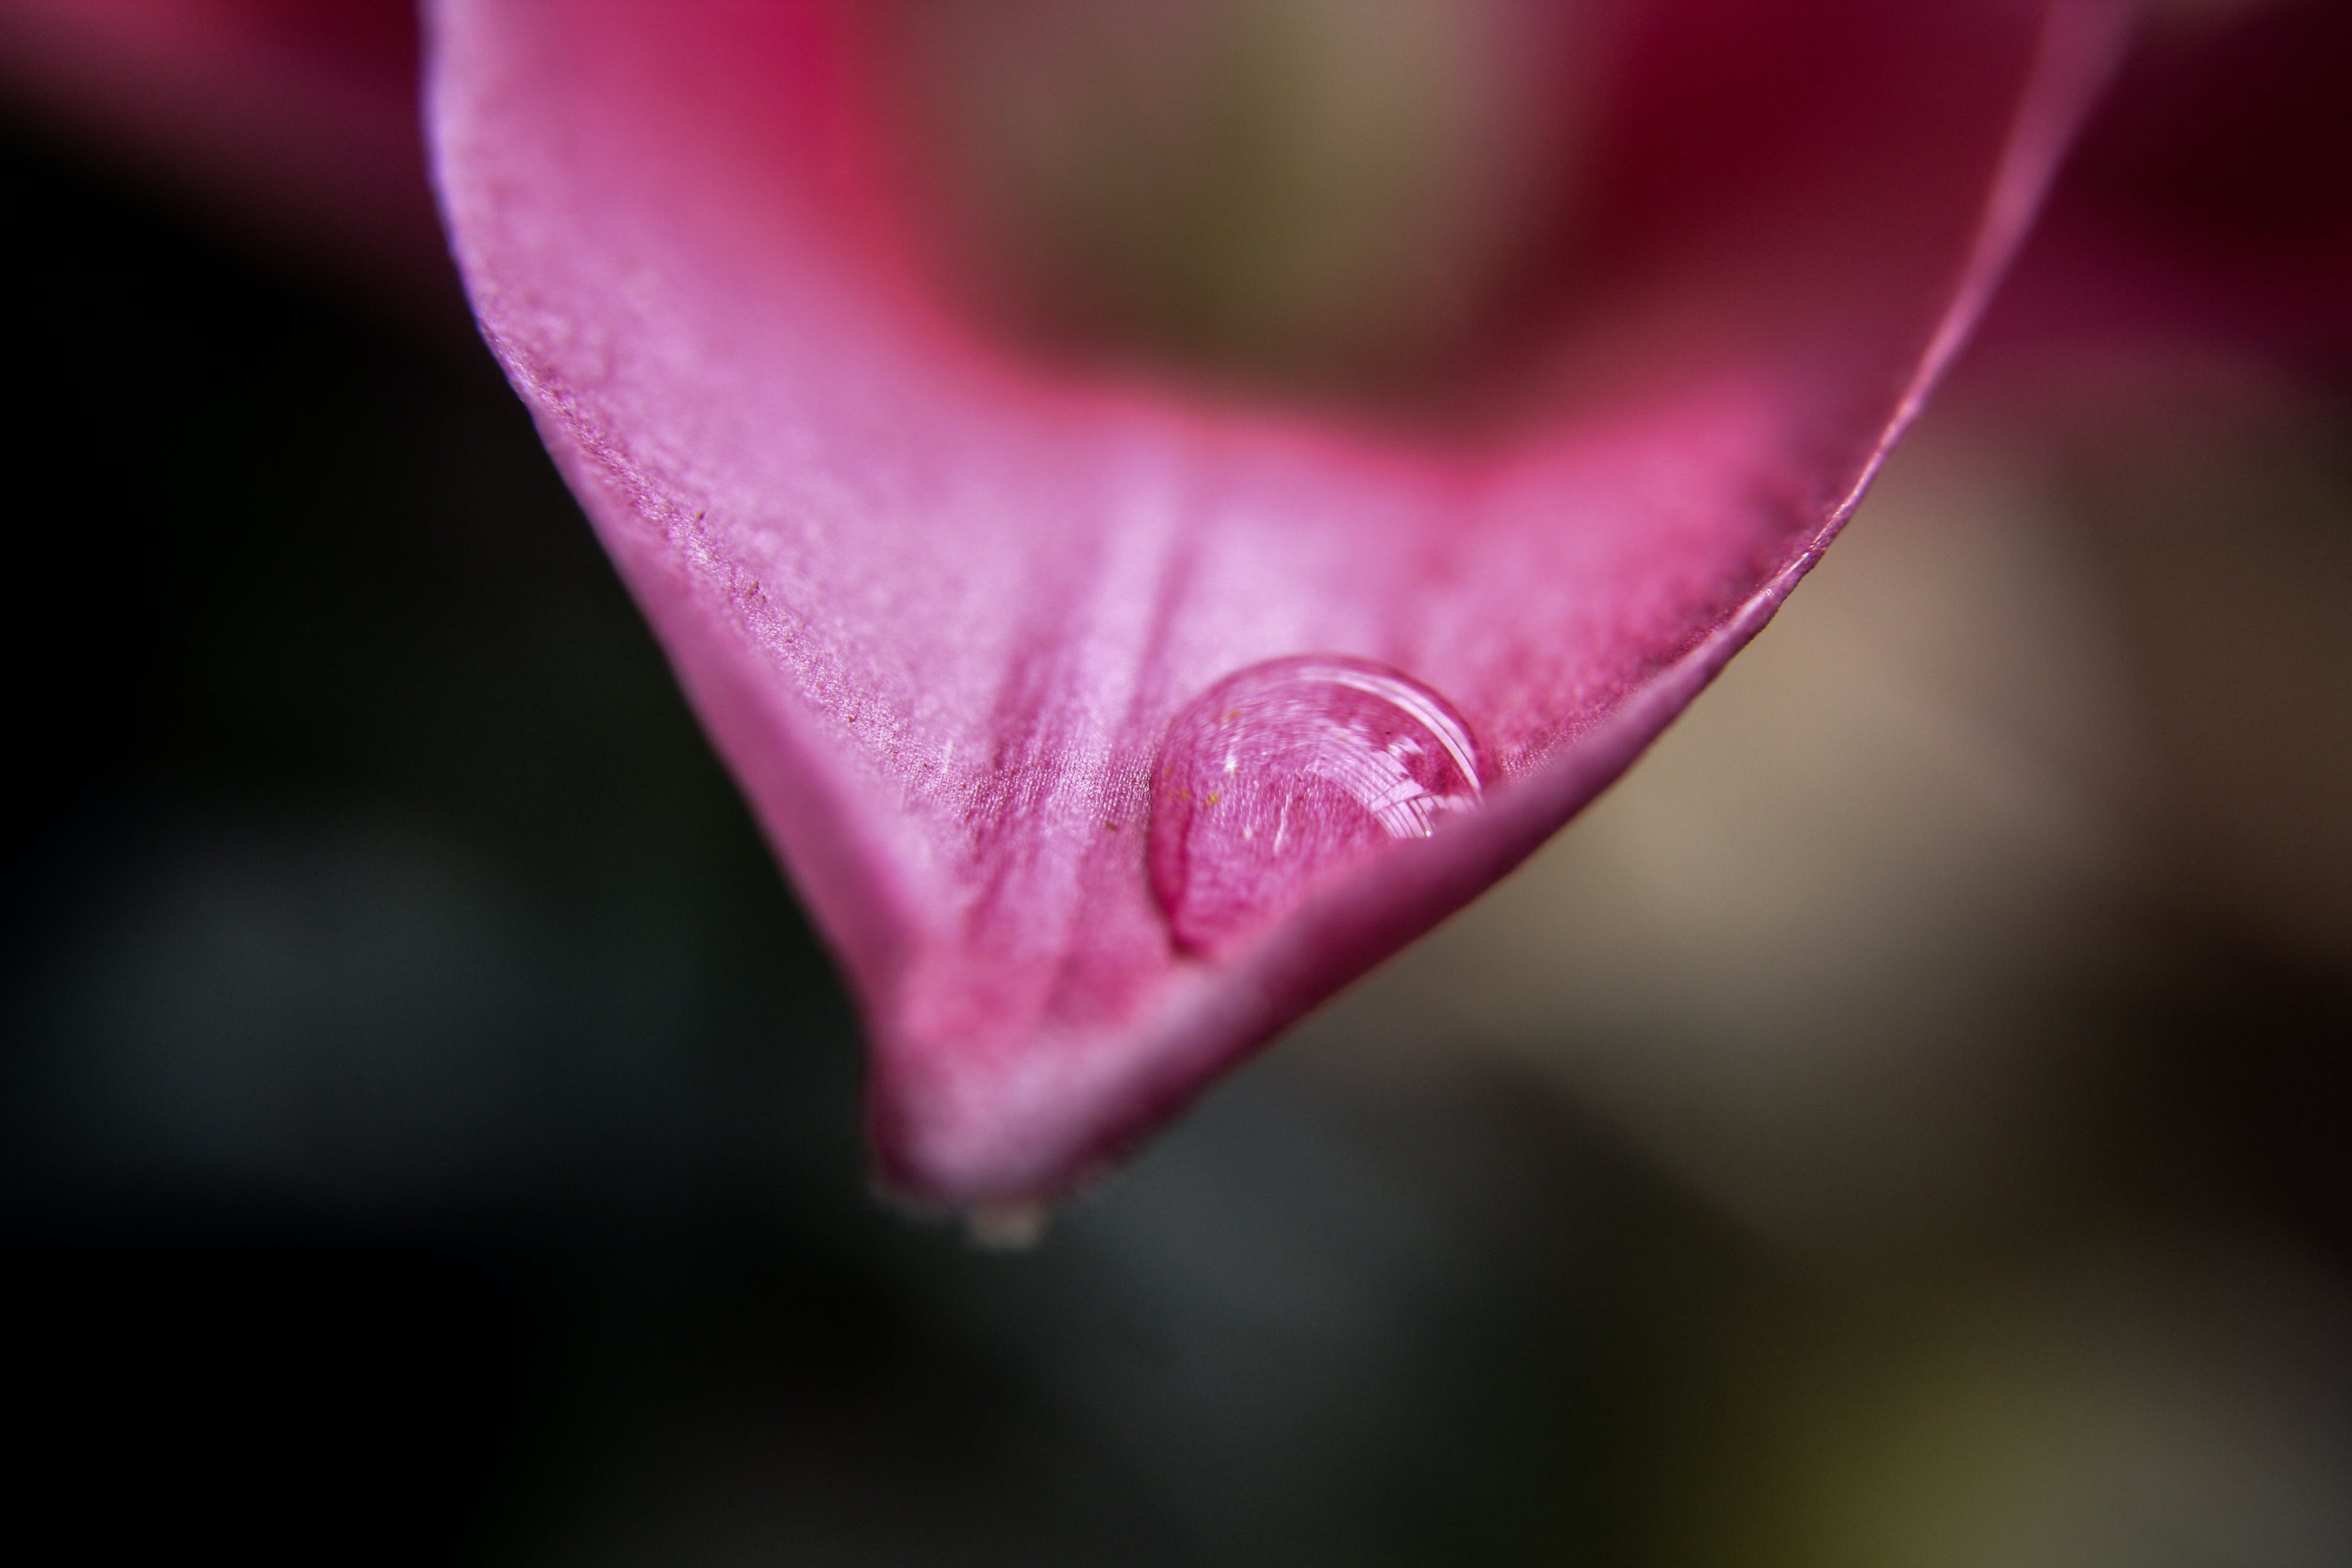 Selective Focus of Water Droplet on Red Petal of Flower